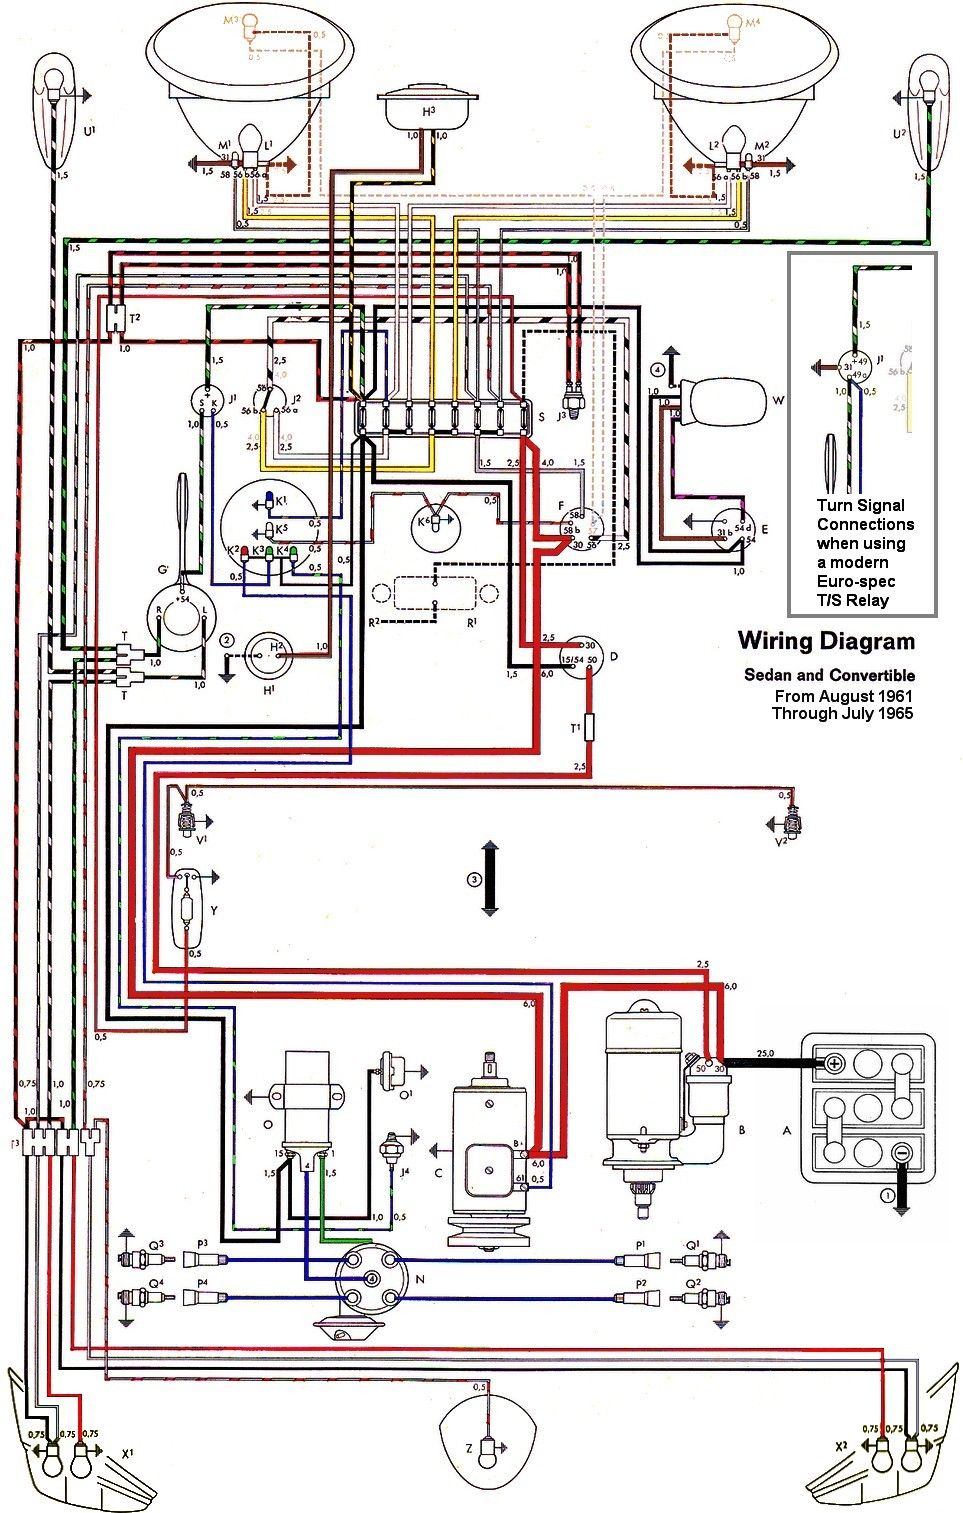 2235472c26e9b61112a110100d6ddea3 wiring diagram in color 1964 vw bug, beetle, convertible the vw beetle wiring harness routing at beritabola.co